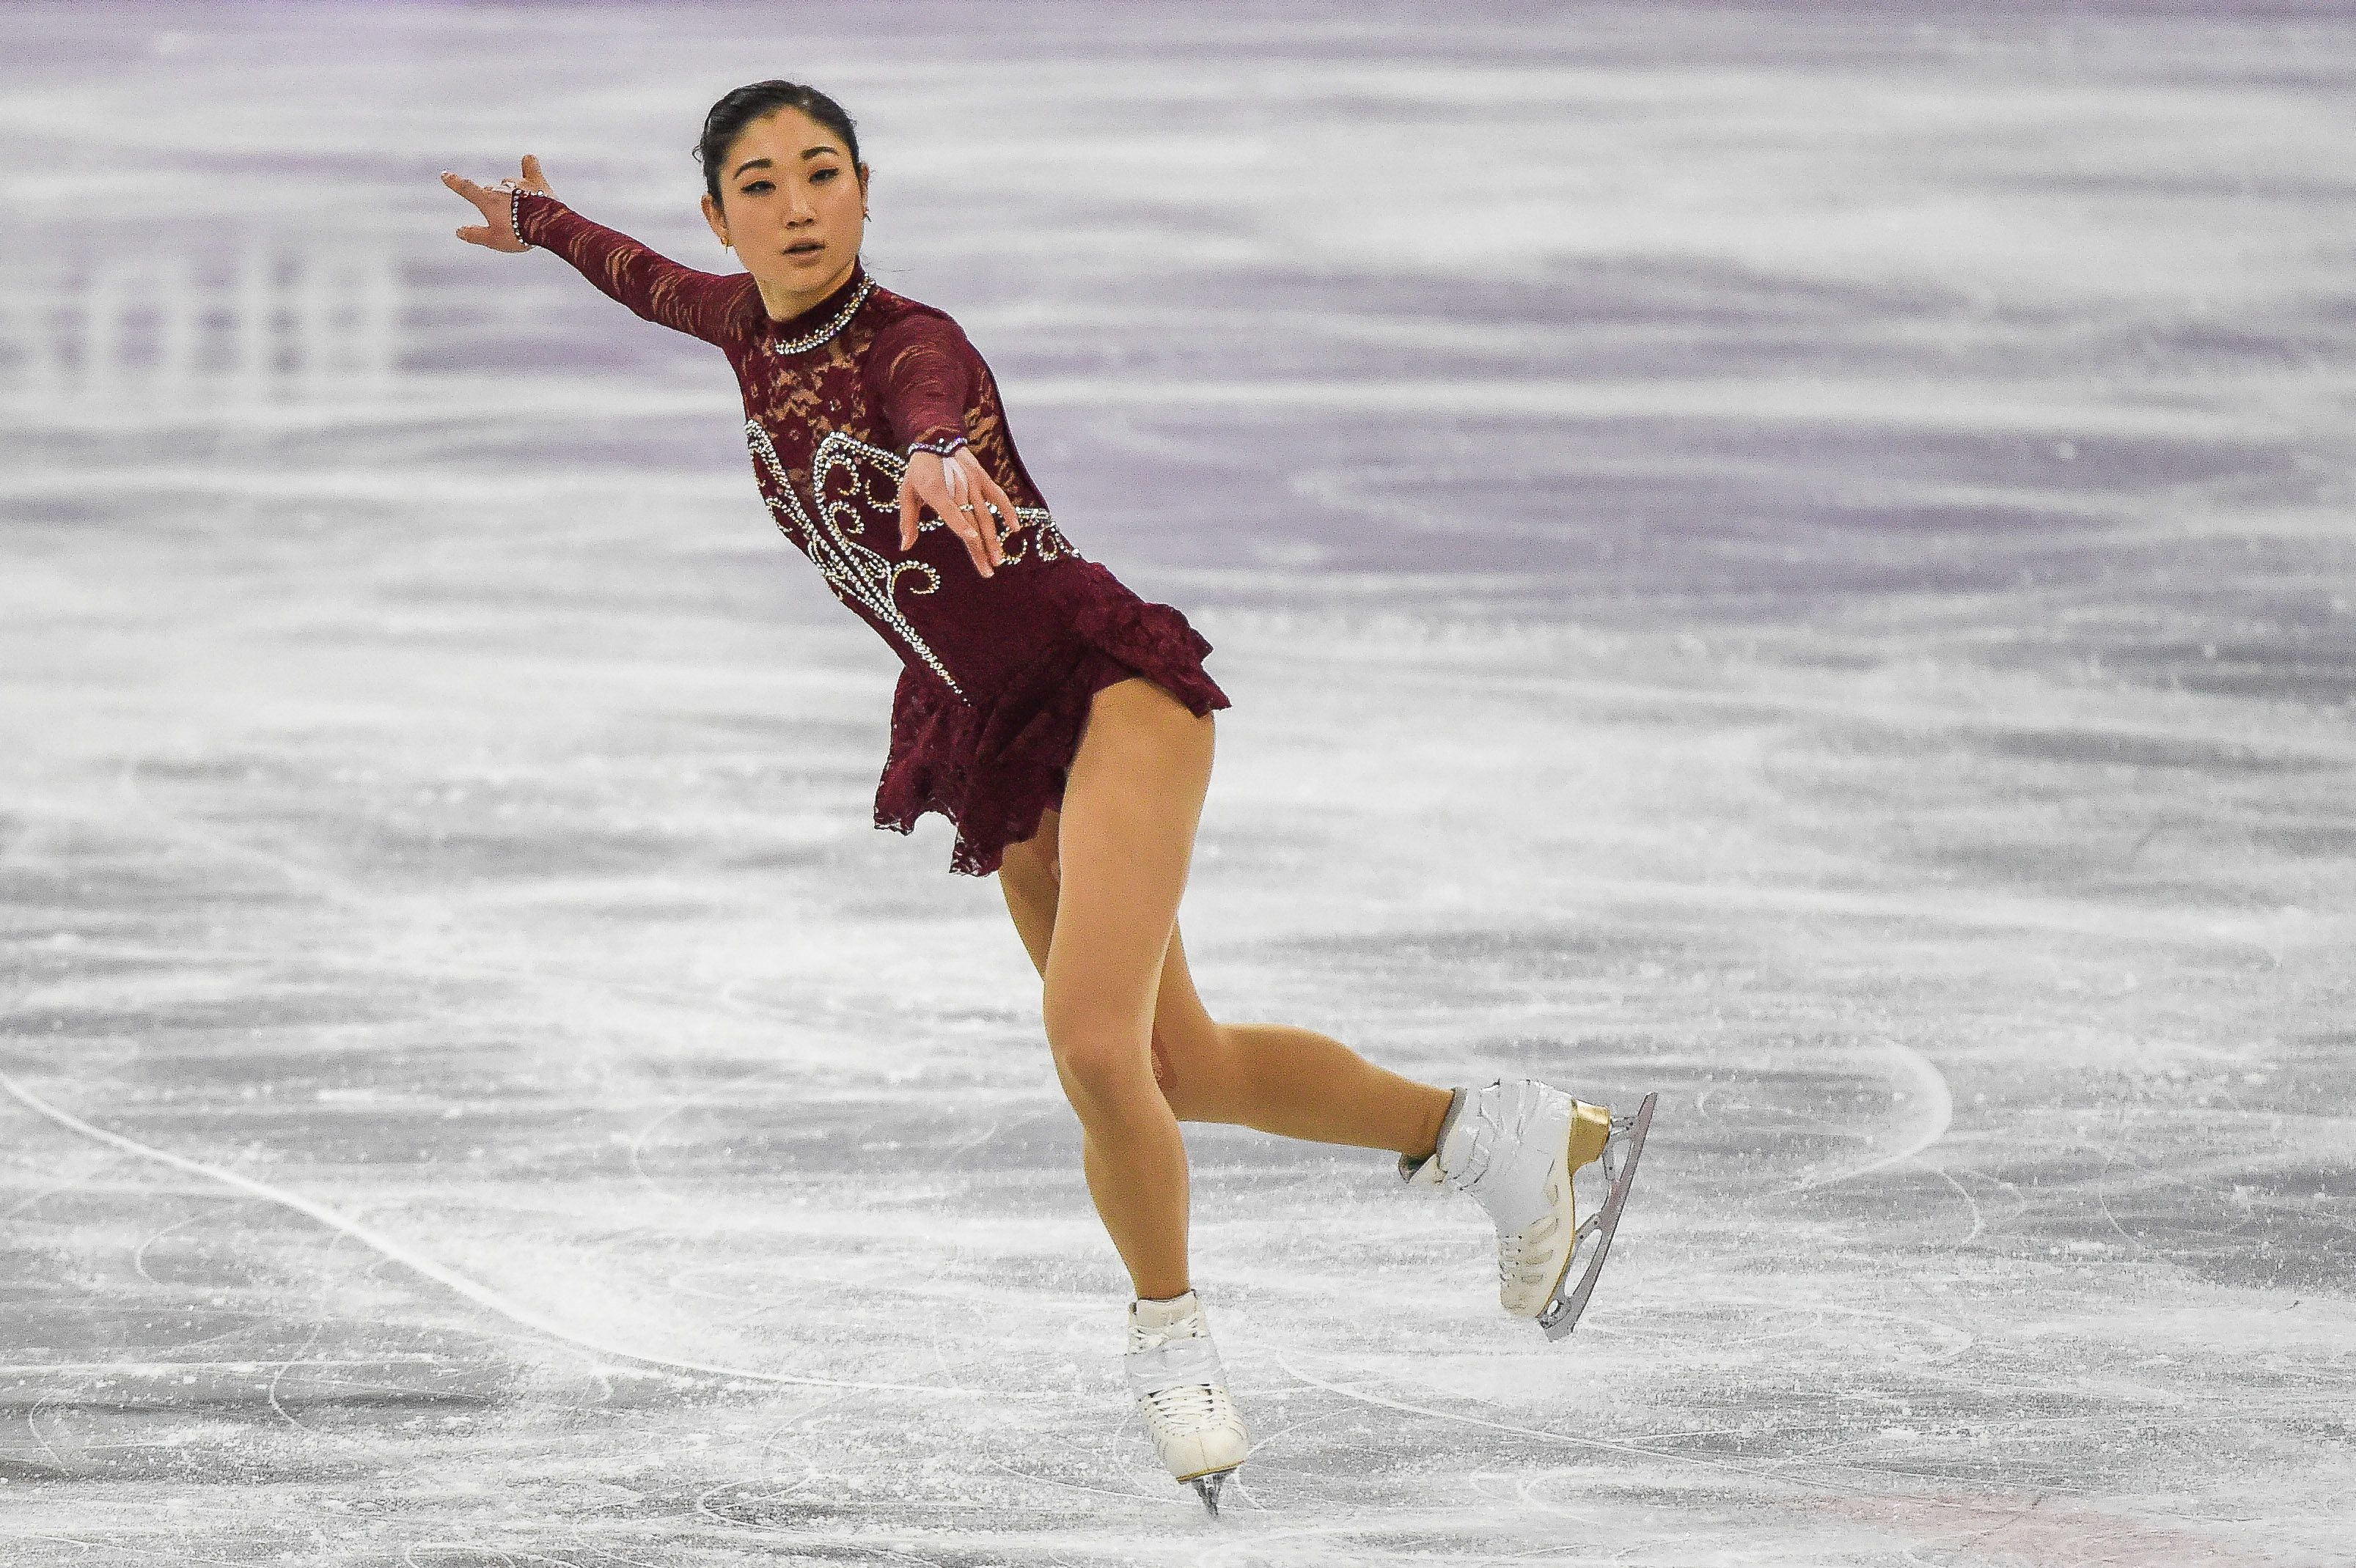 Winter Olympics 2018: What to watch Thursday, Feb